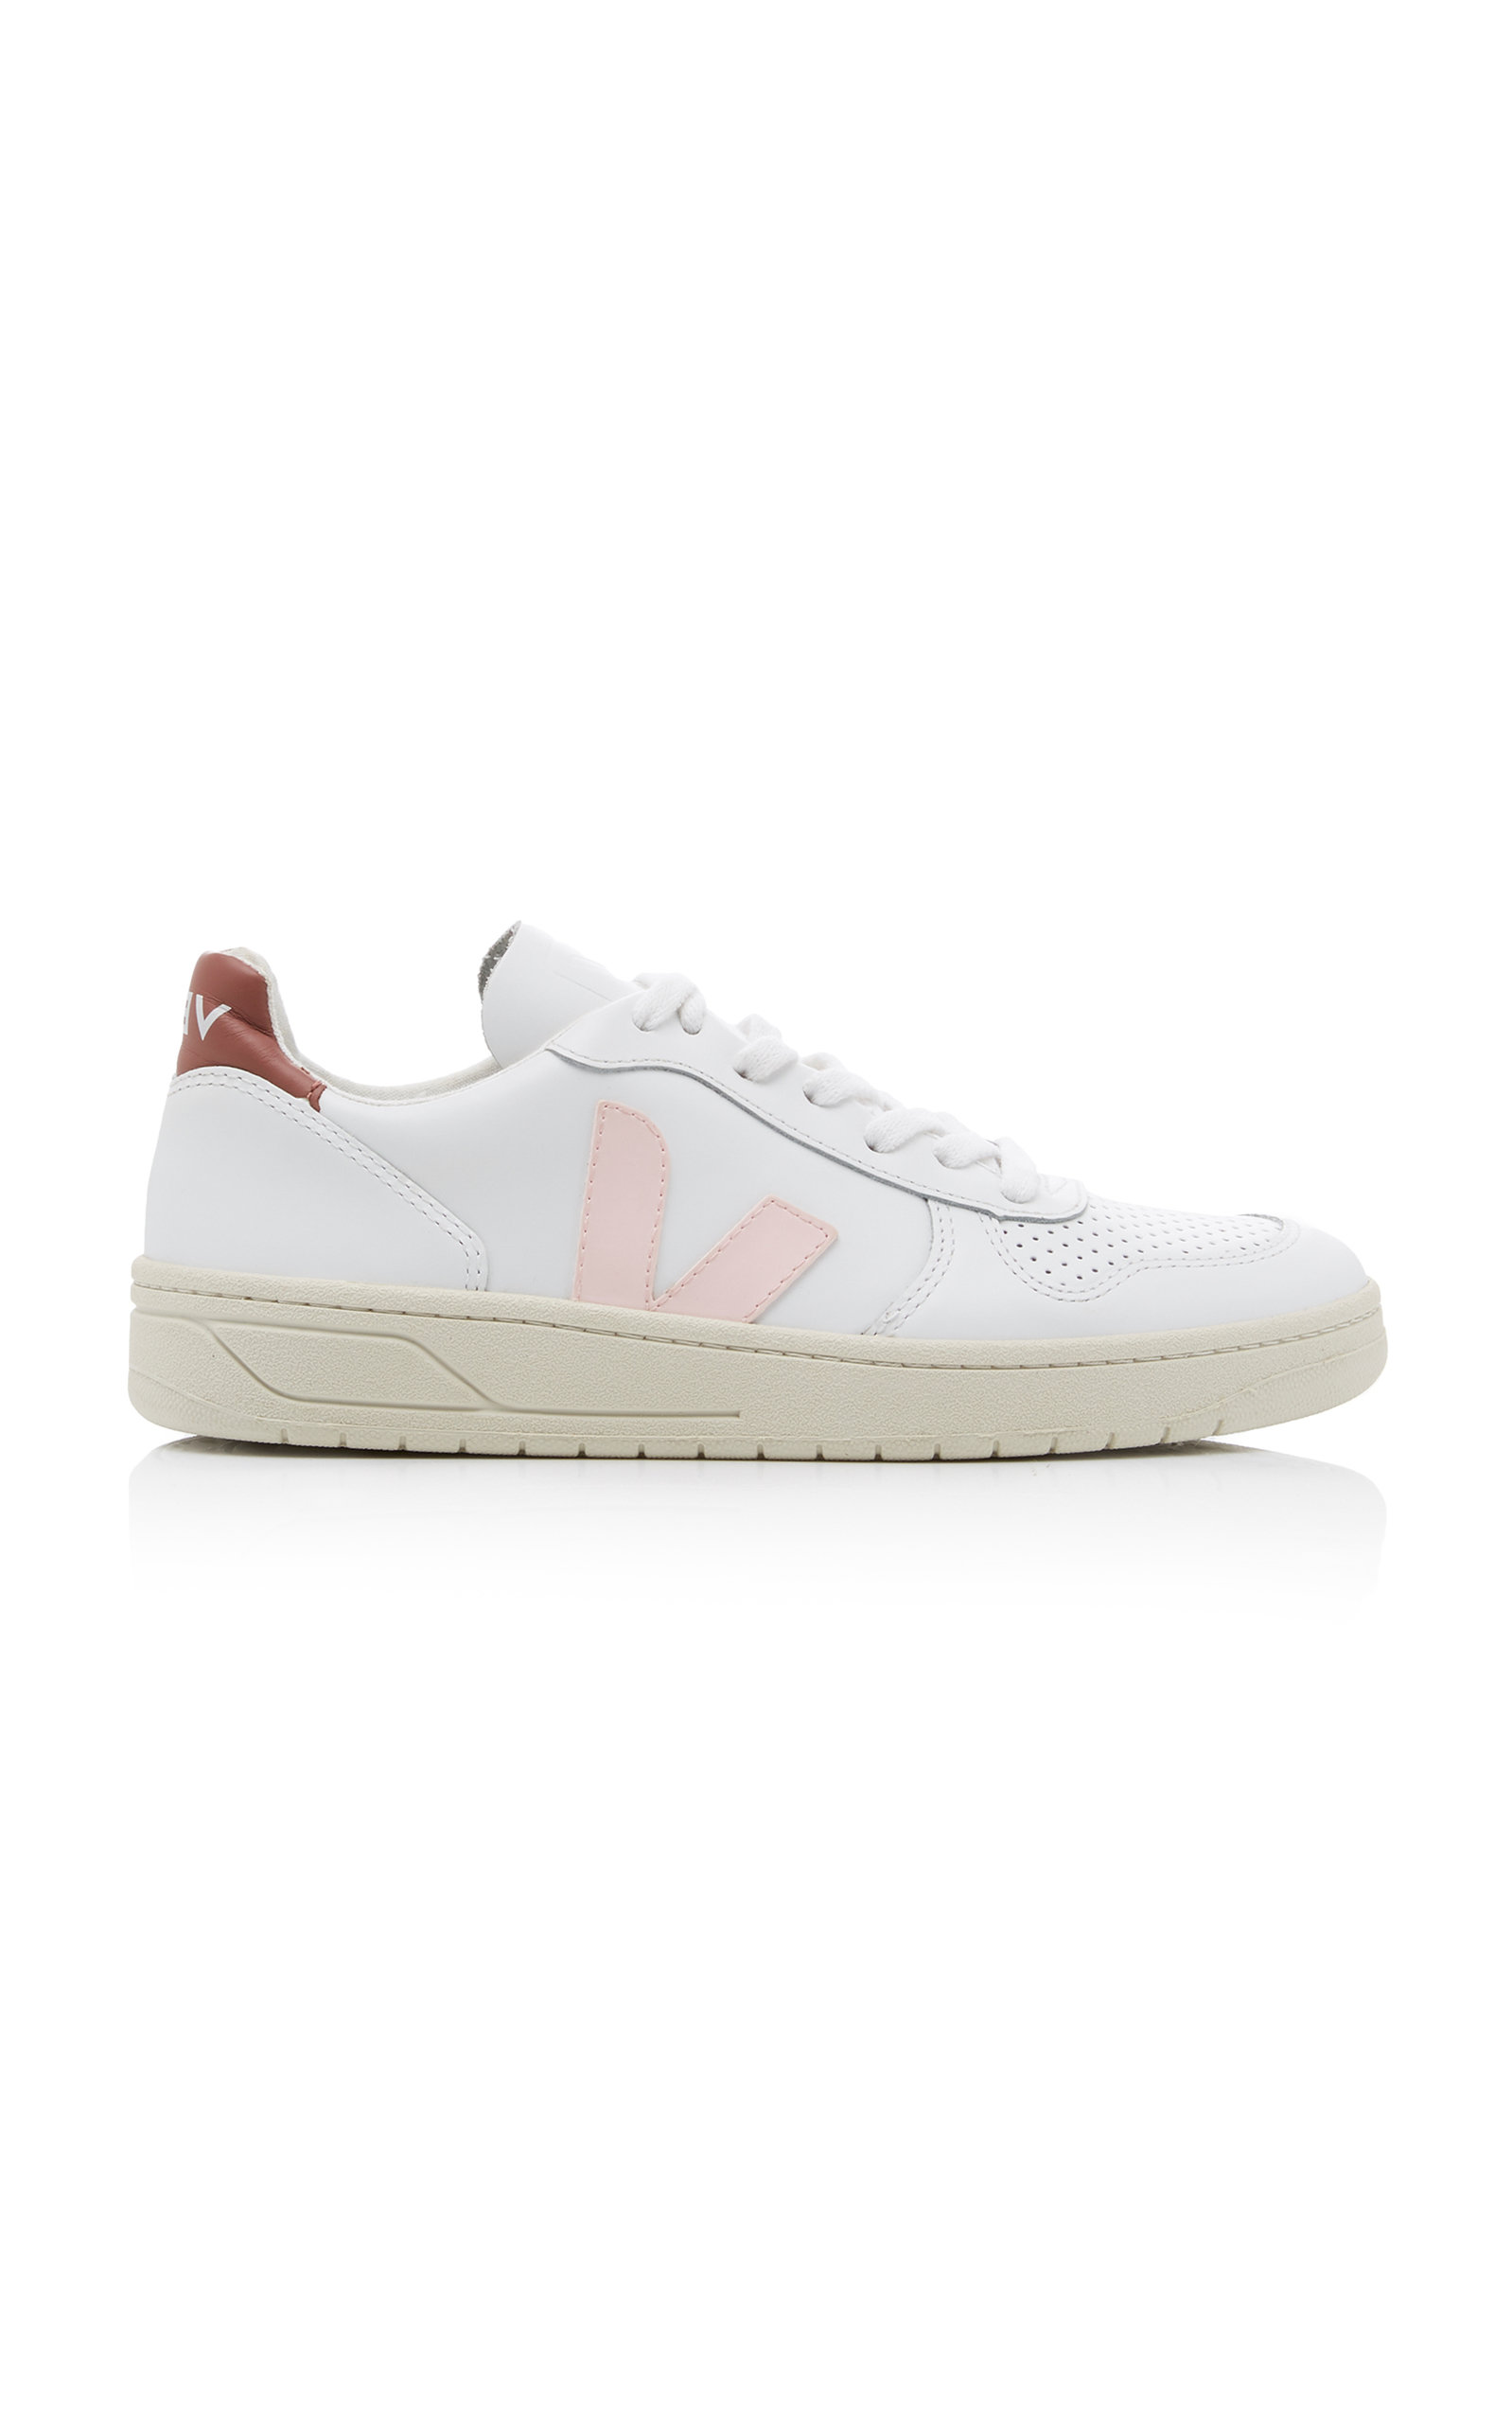 Veja   VEJA V-10 Leather, Mesh, And Suede Sneakers Size: 36   Clouty